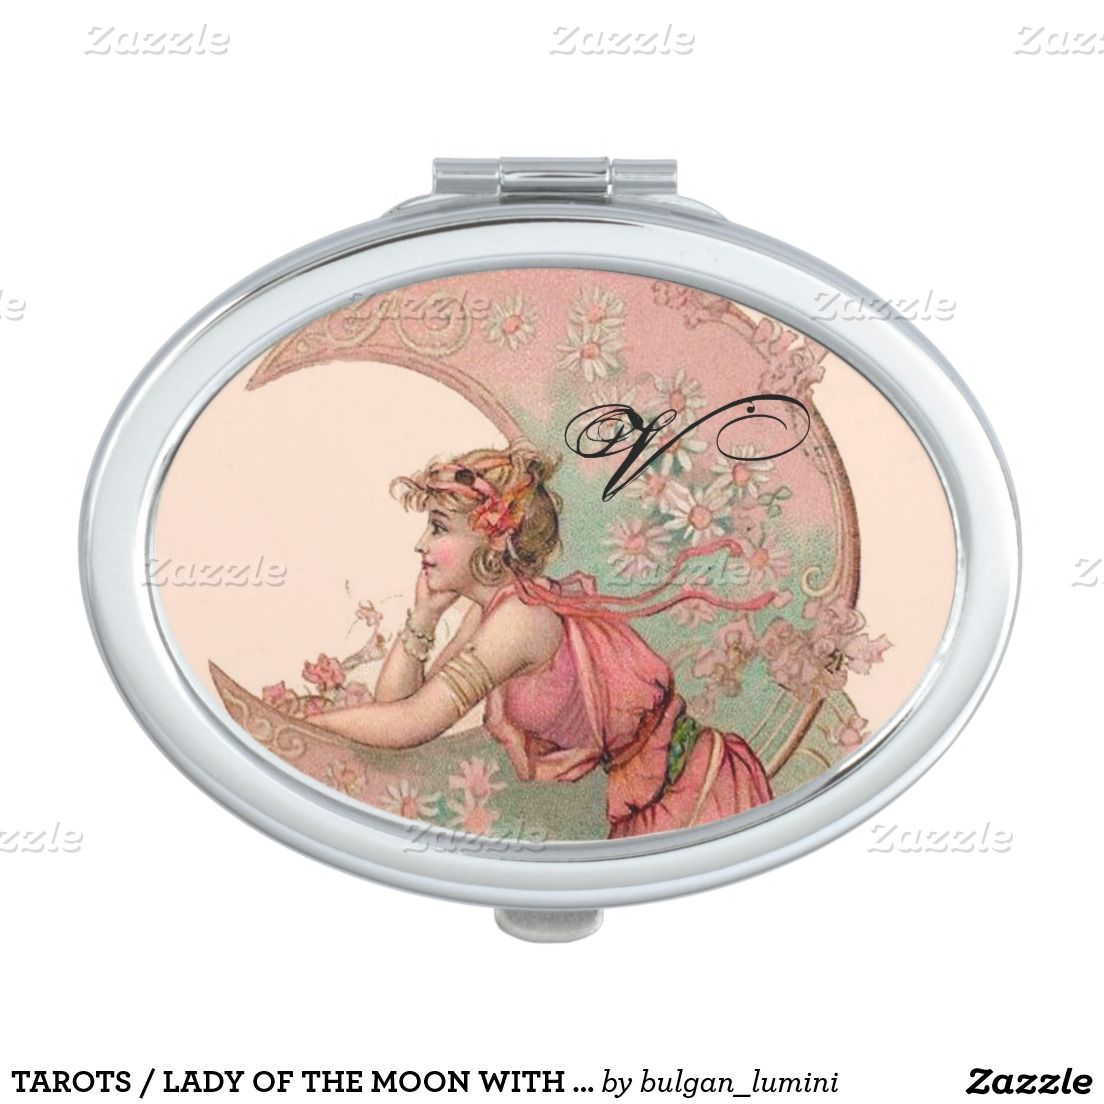 TAROTS / LADY OF THE MOON WITH FLOWERS IN PINK VANITY MIRROR